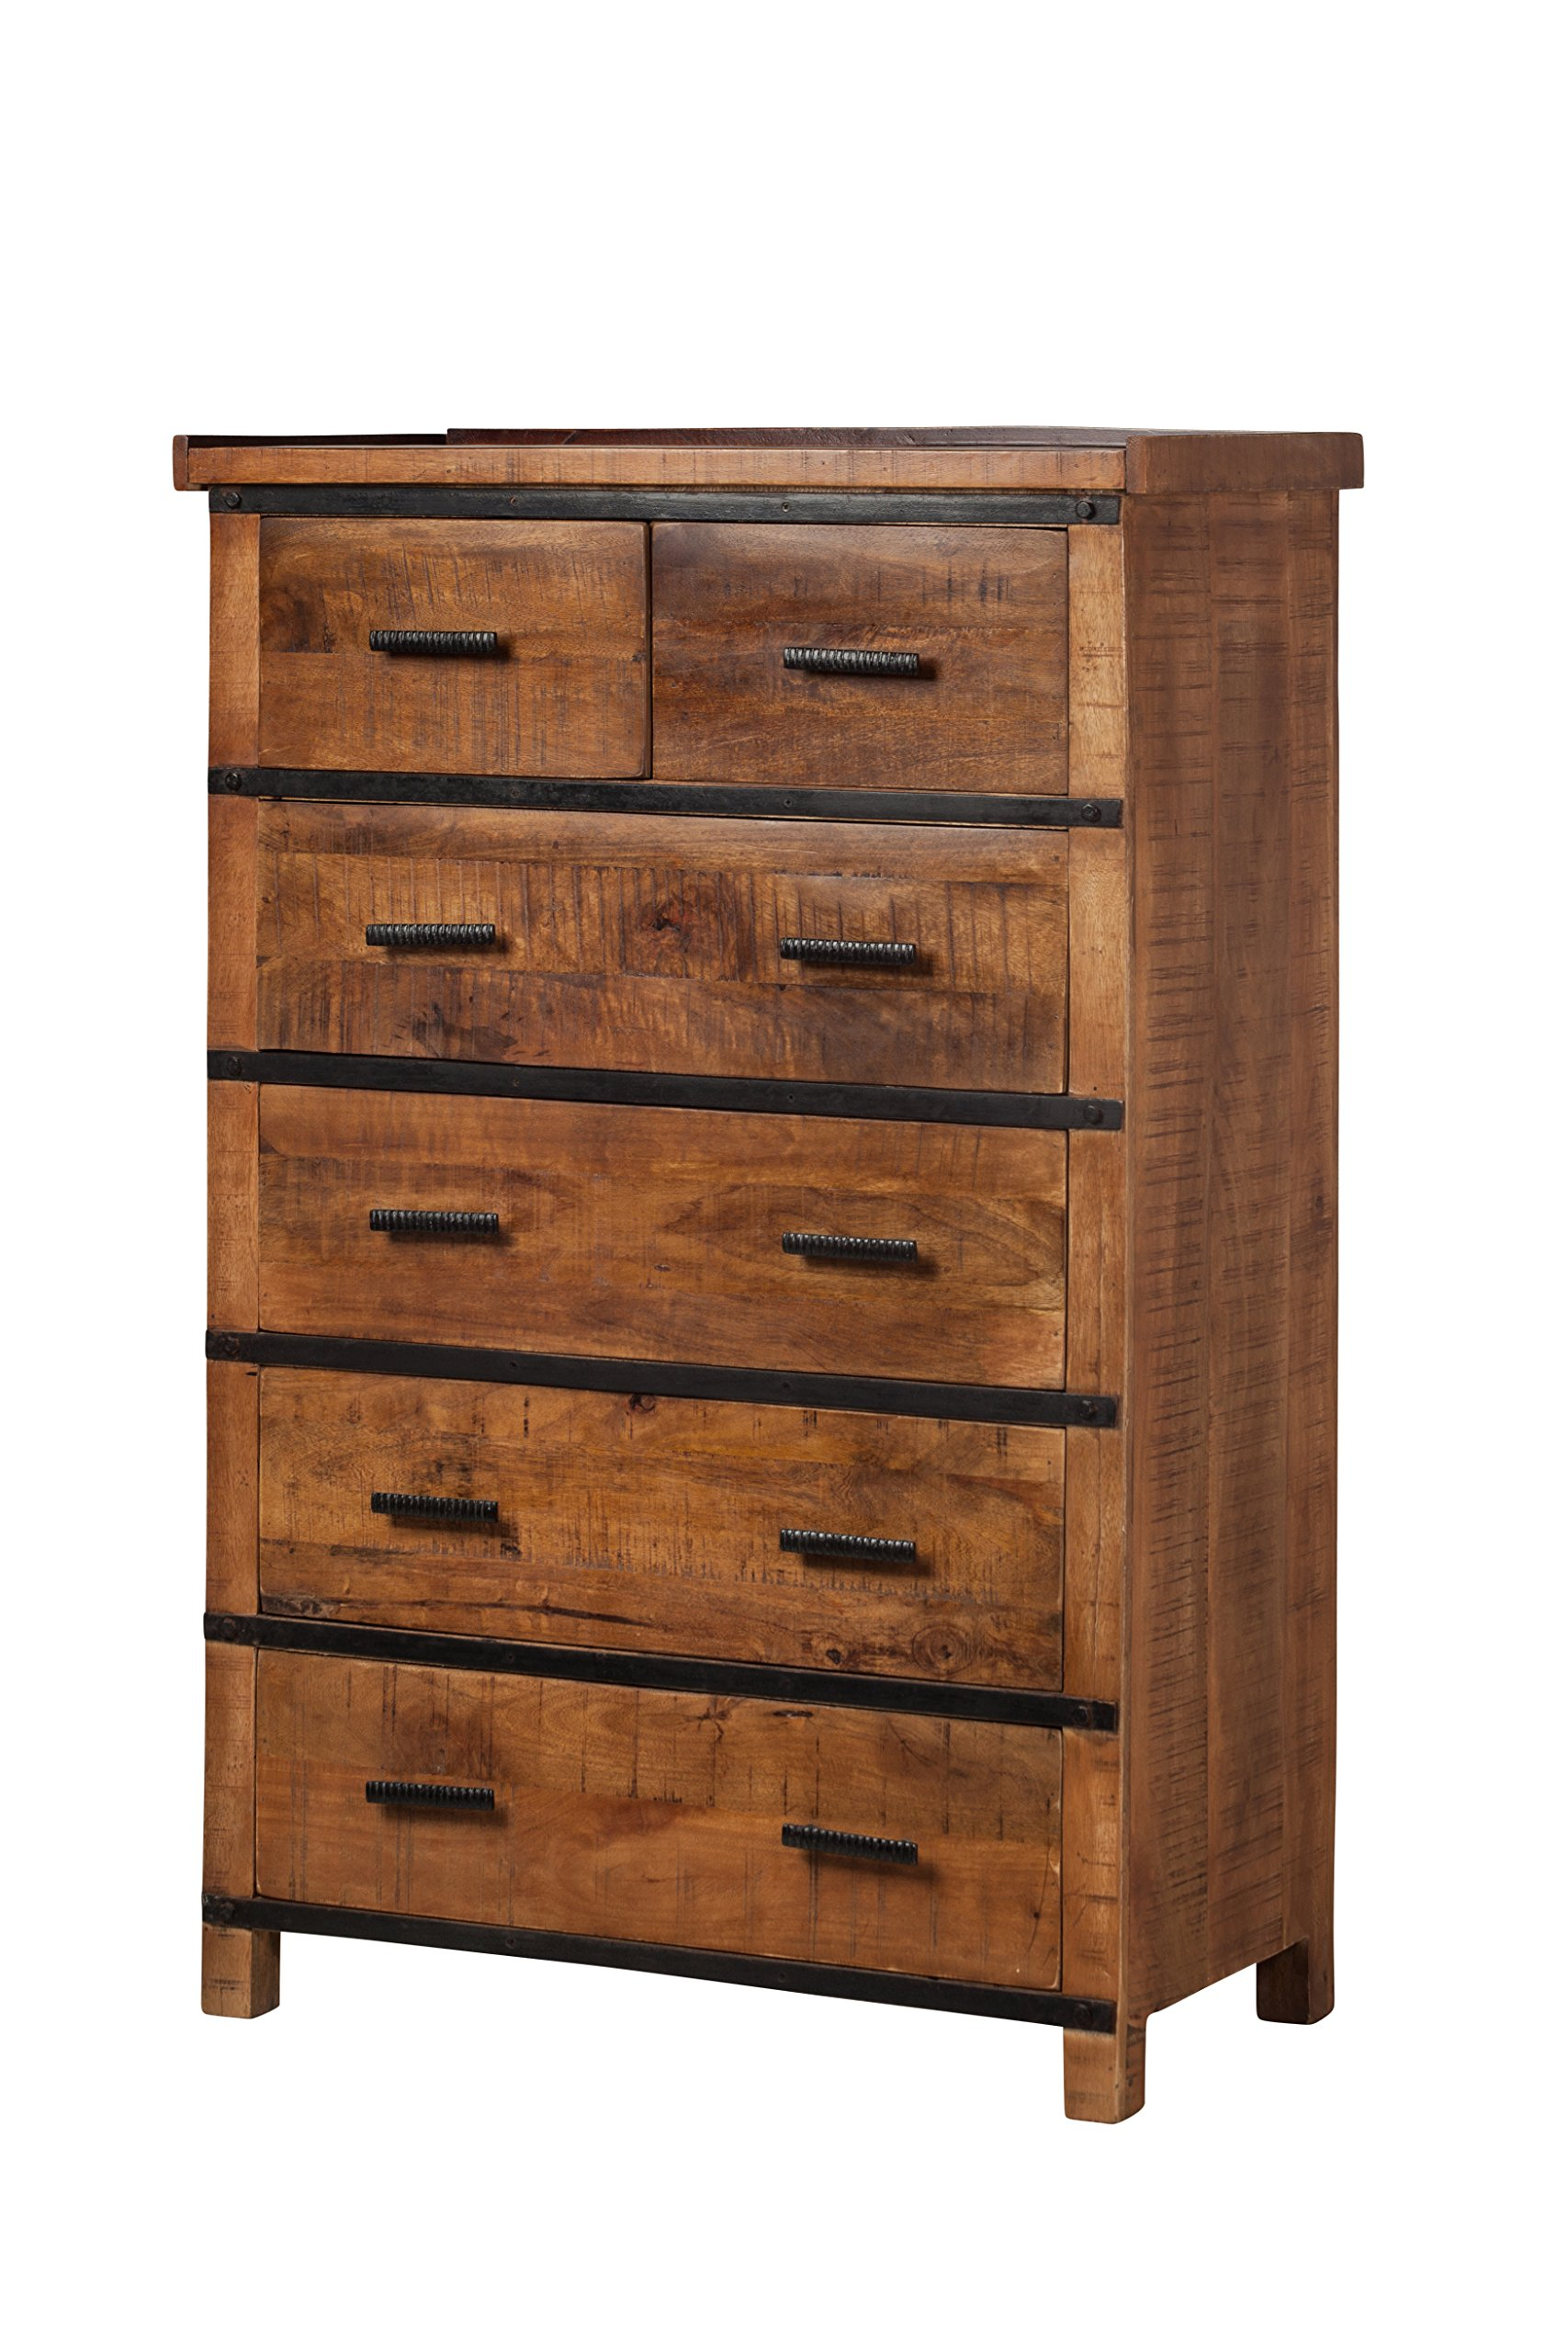 Owen Reclaimed Mango Wood Tall Dresser for Bedroom 6 Drawer Narrow Midcentury Modern Classic Retro Art Deco Industrial Farmhouse Rustic Country Living Handmade in India Style Designer Furniture Piece